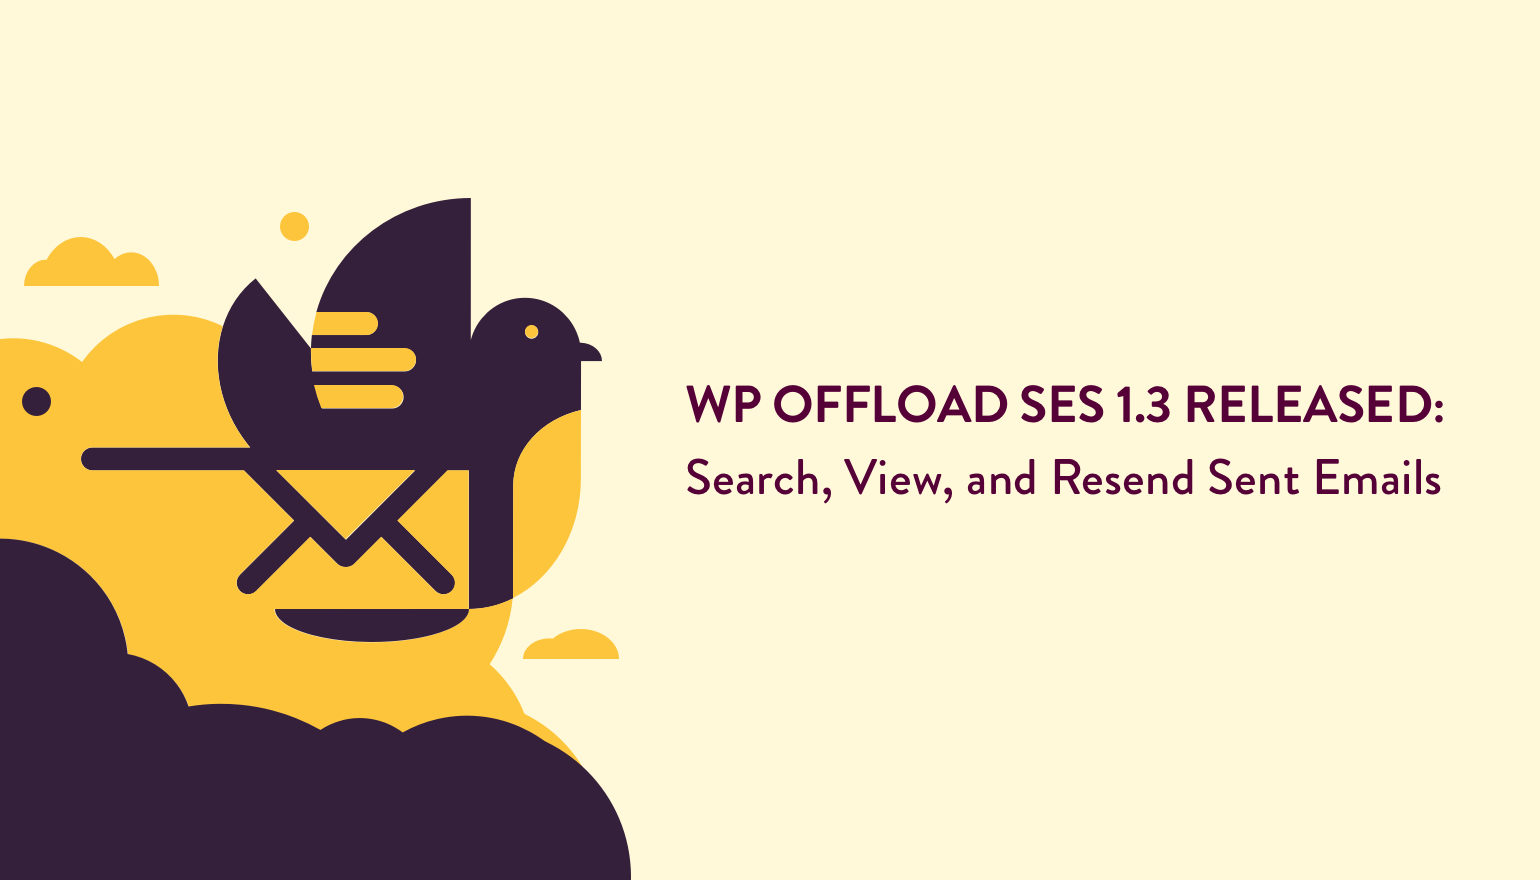 WP Offload SES 1.3 Released: Search, View, and Resend Sent Emails